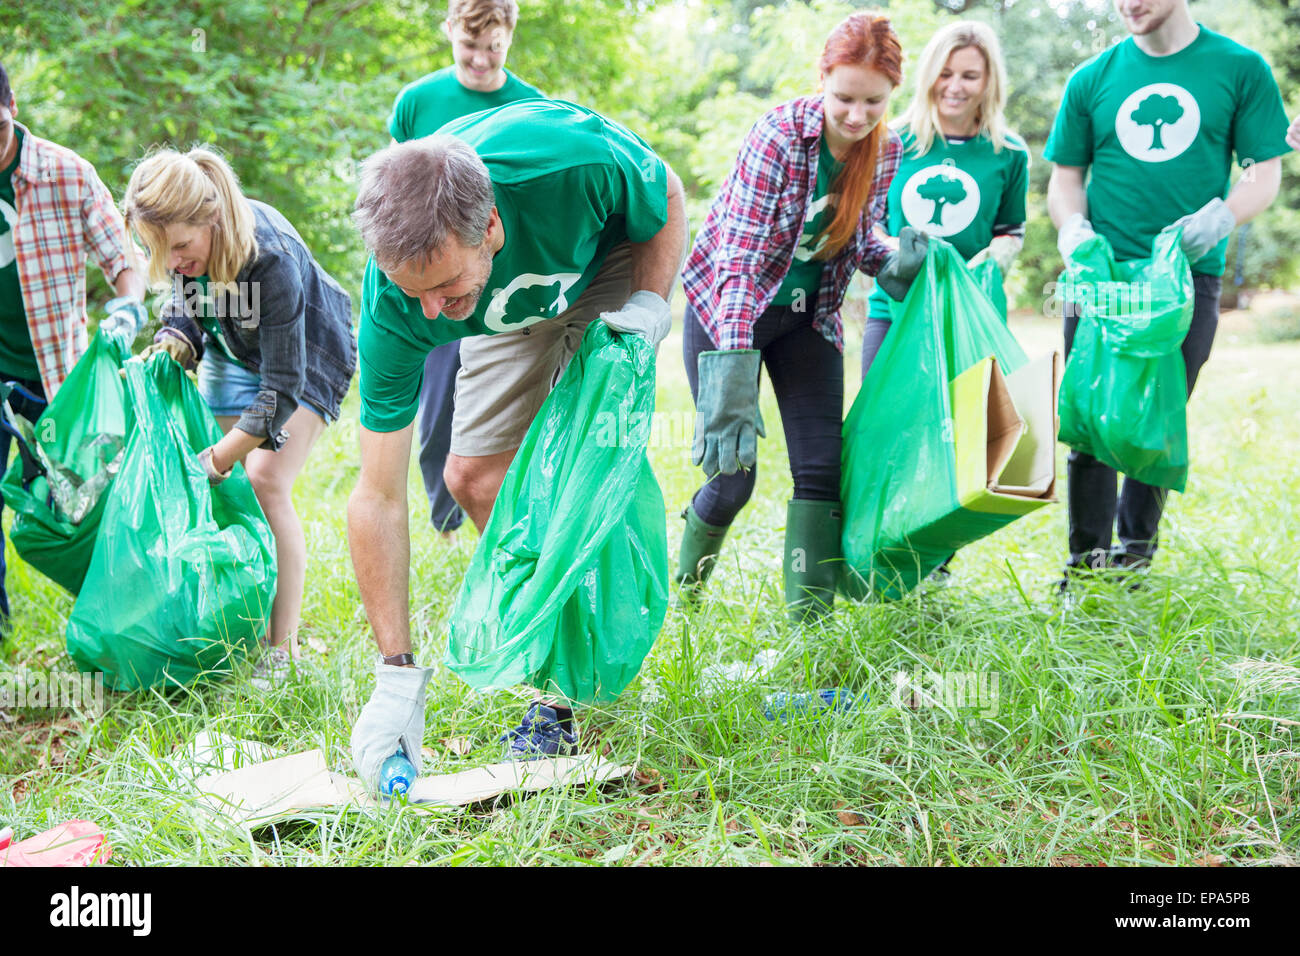 Woman Reaches To Pick Up Trash In The Park Royalty Stock Photo